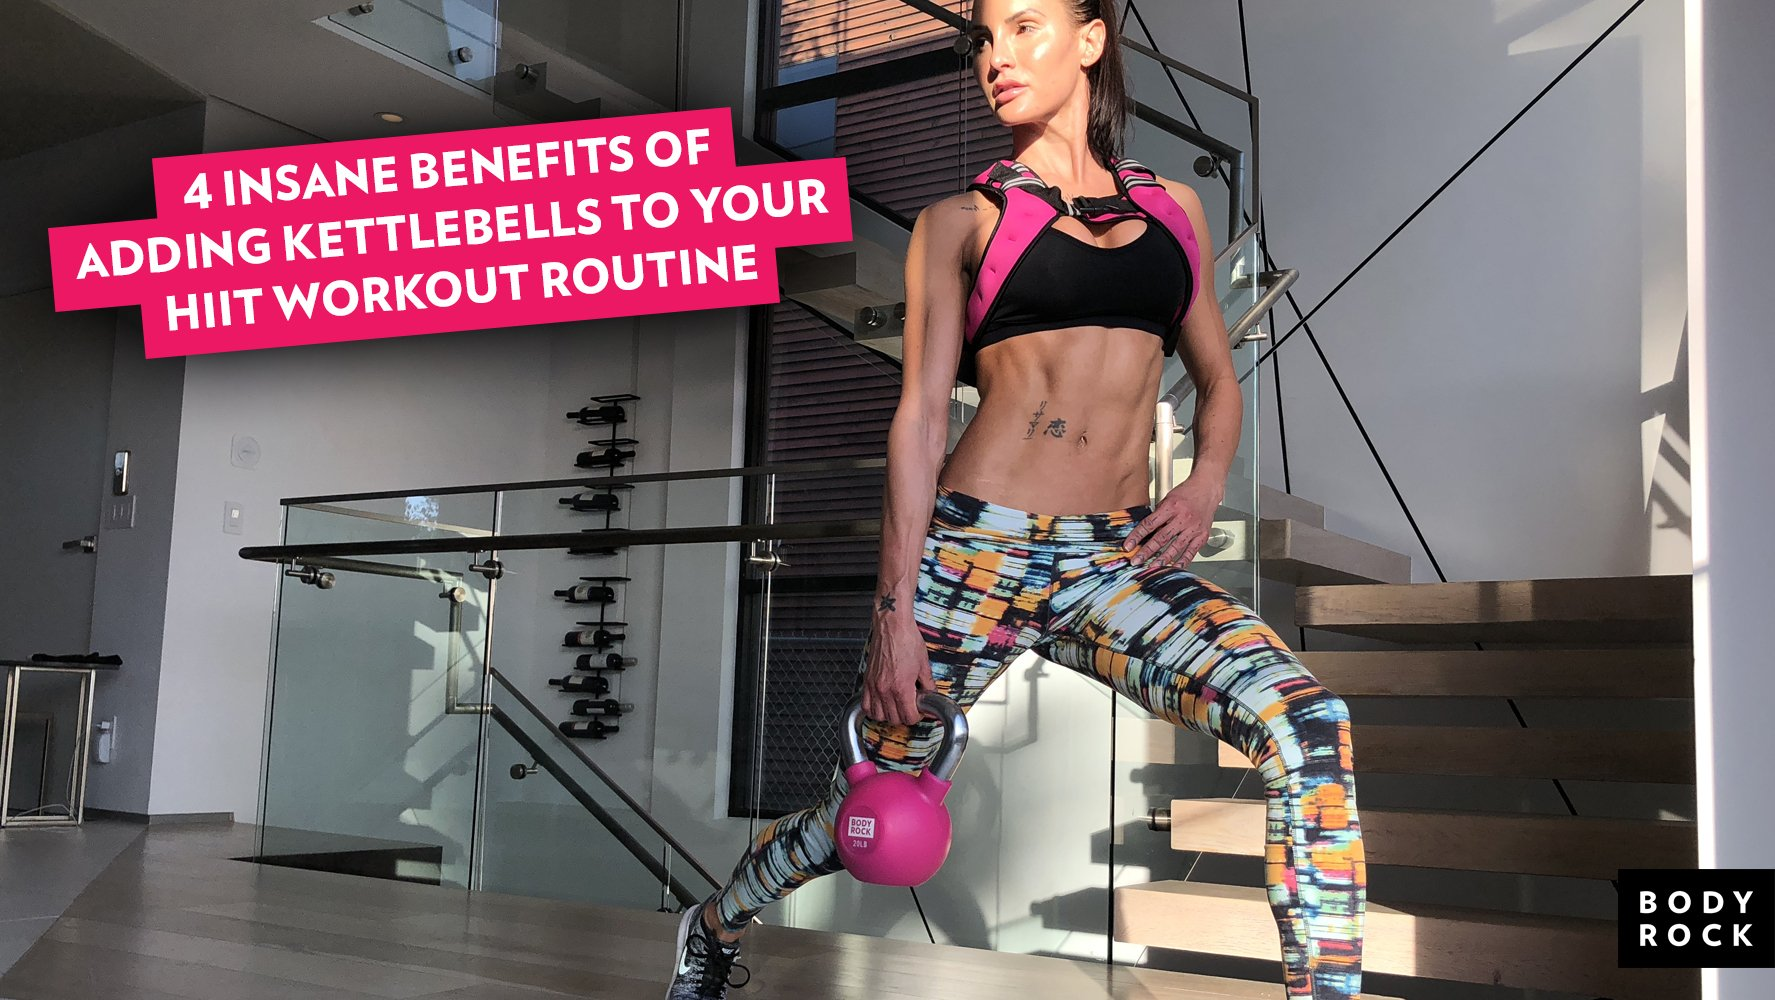 4 Insane Benefits Of Adding Kettlebells To Your HIIT Workout Routine